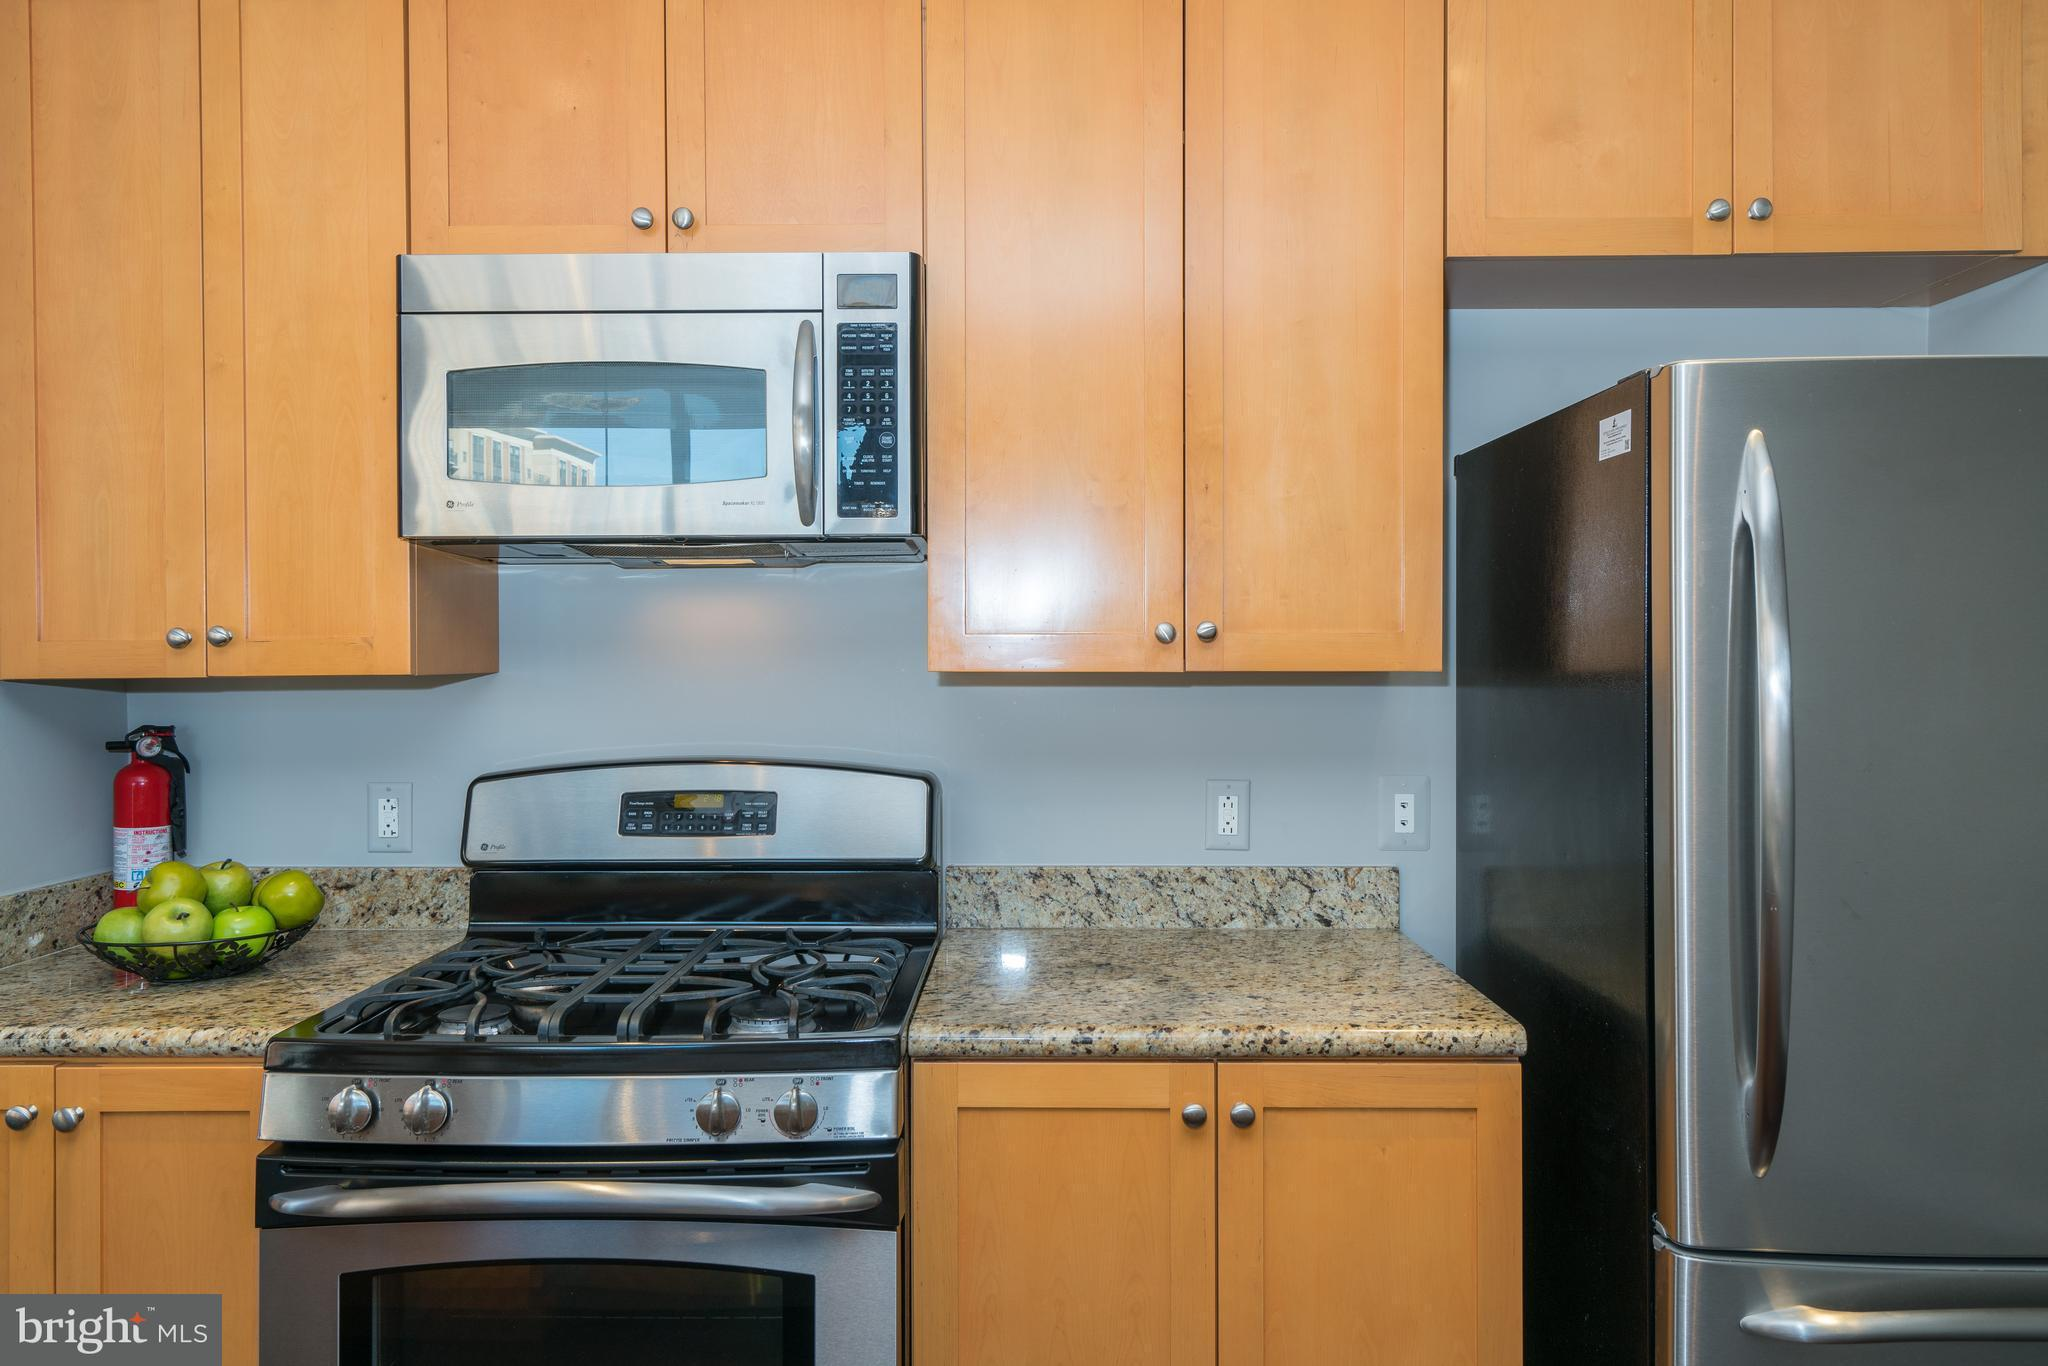 3600 GLEBE ROAD S, #622W, Arlington, VA, 22202 | RE/MAX Gateway